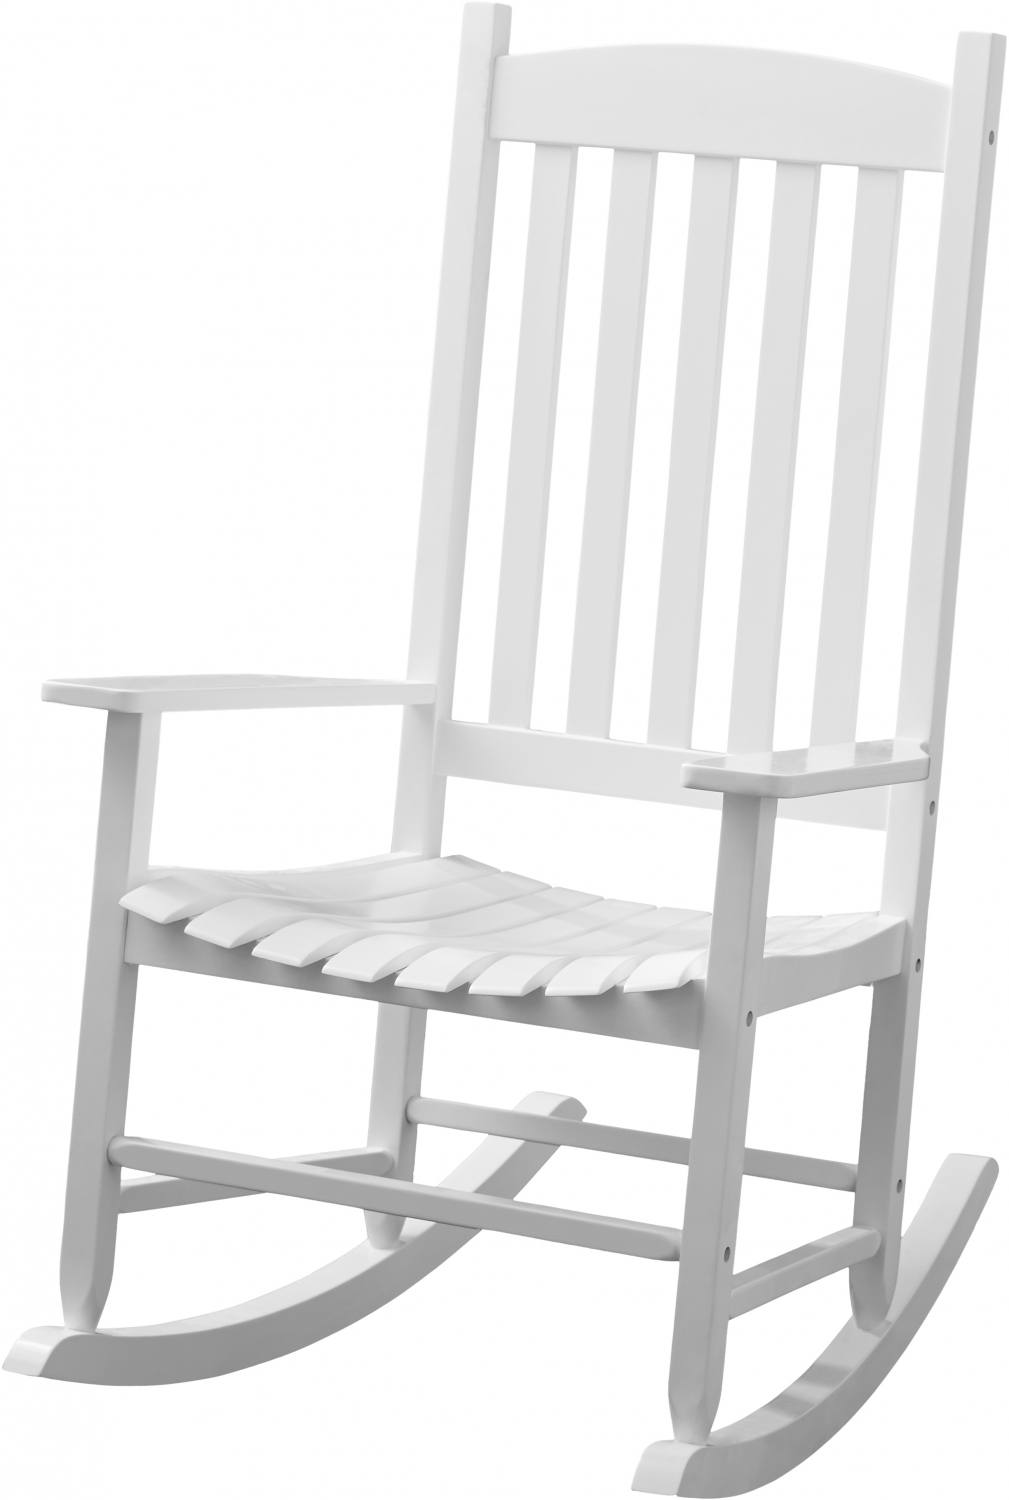 Details About Solid Wood Slat Outdoor Rocking Chair Patio Porch Deck Chair Classic High Back